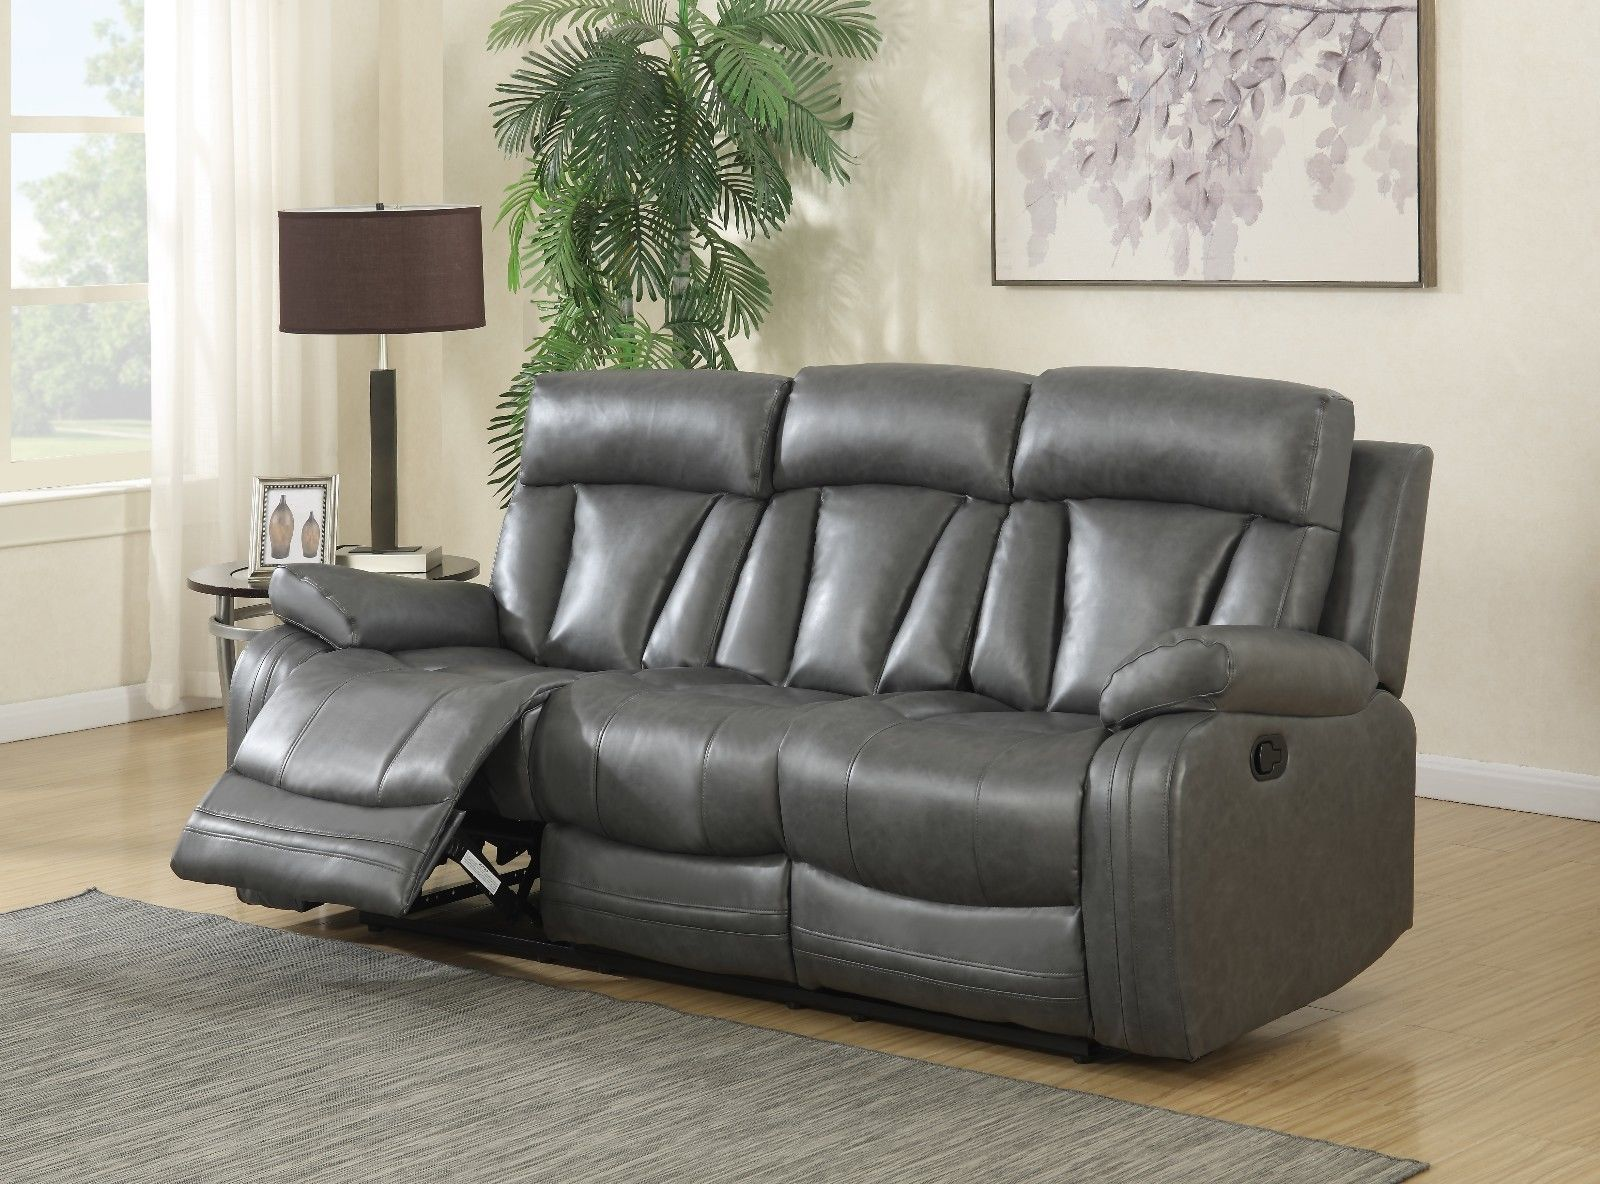 Meridian 645 Avery Living Room Set 3pcs in Grey Bonded Leather Contemporary